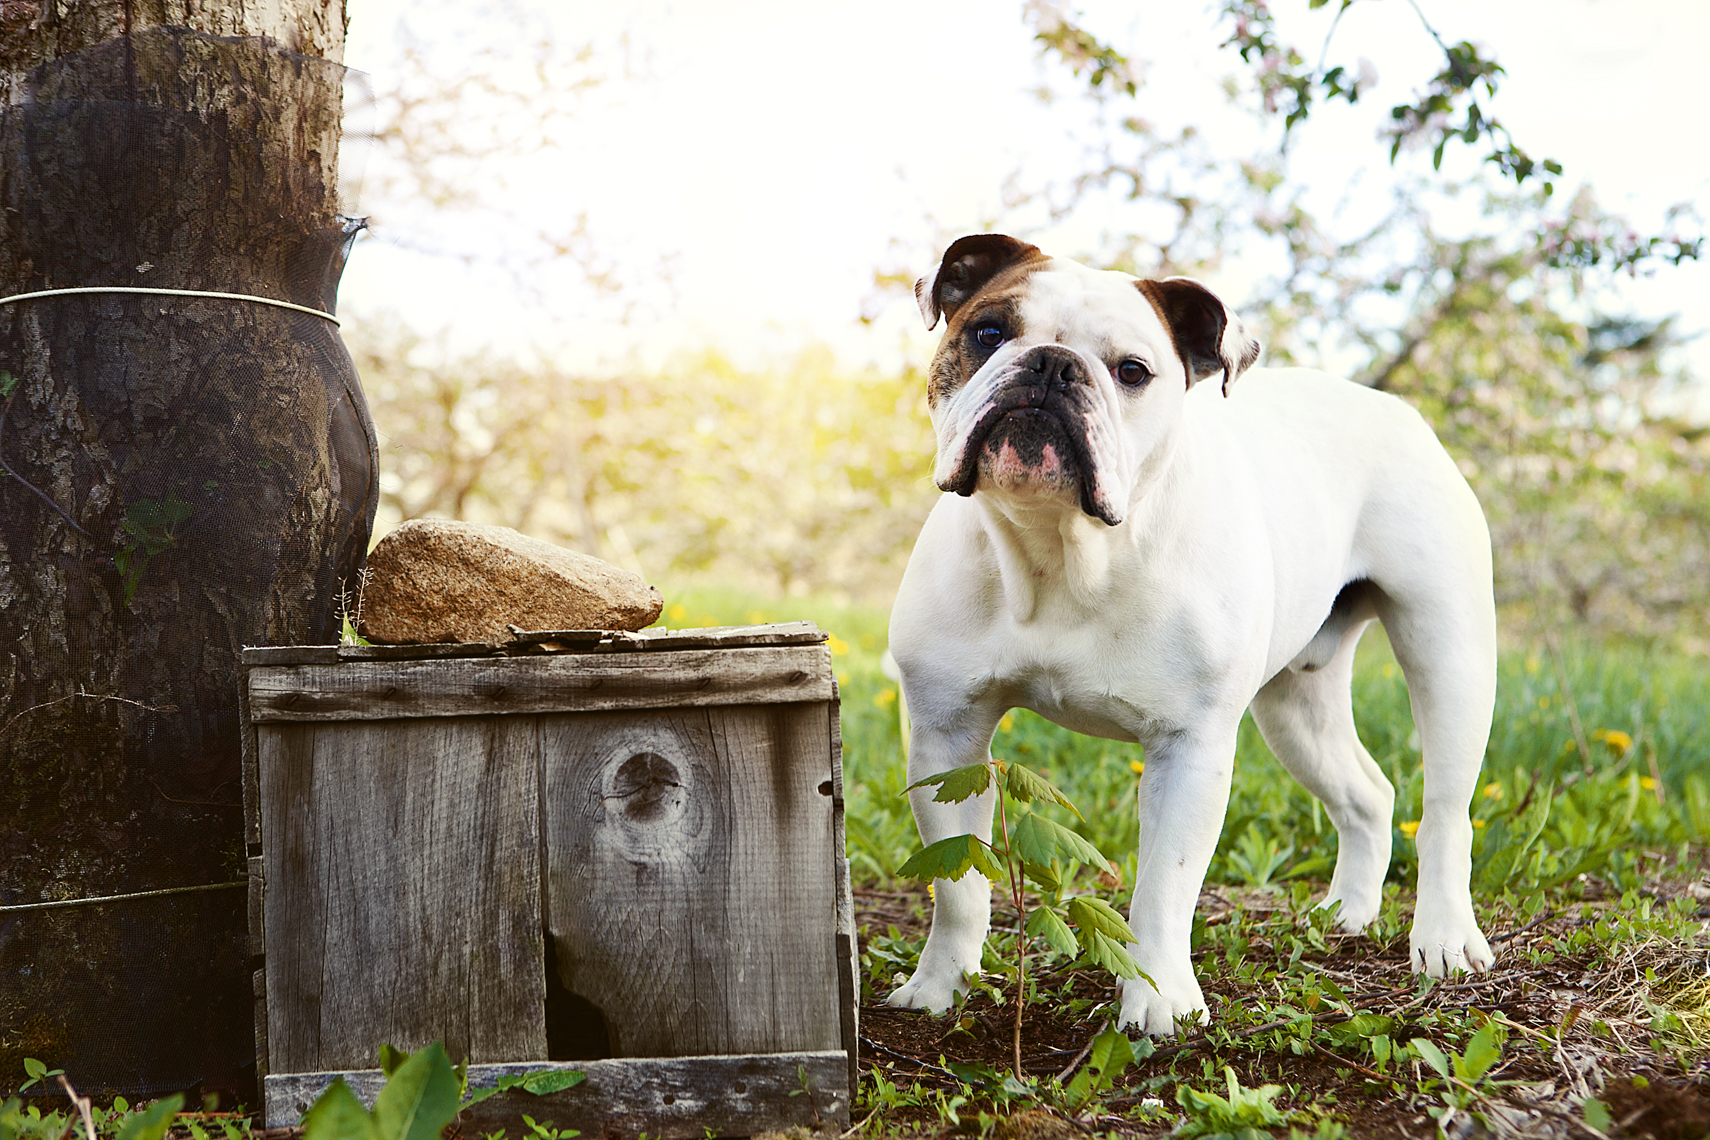 Bulldog portrait next to an orchard